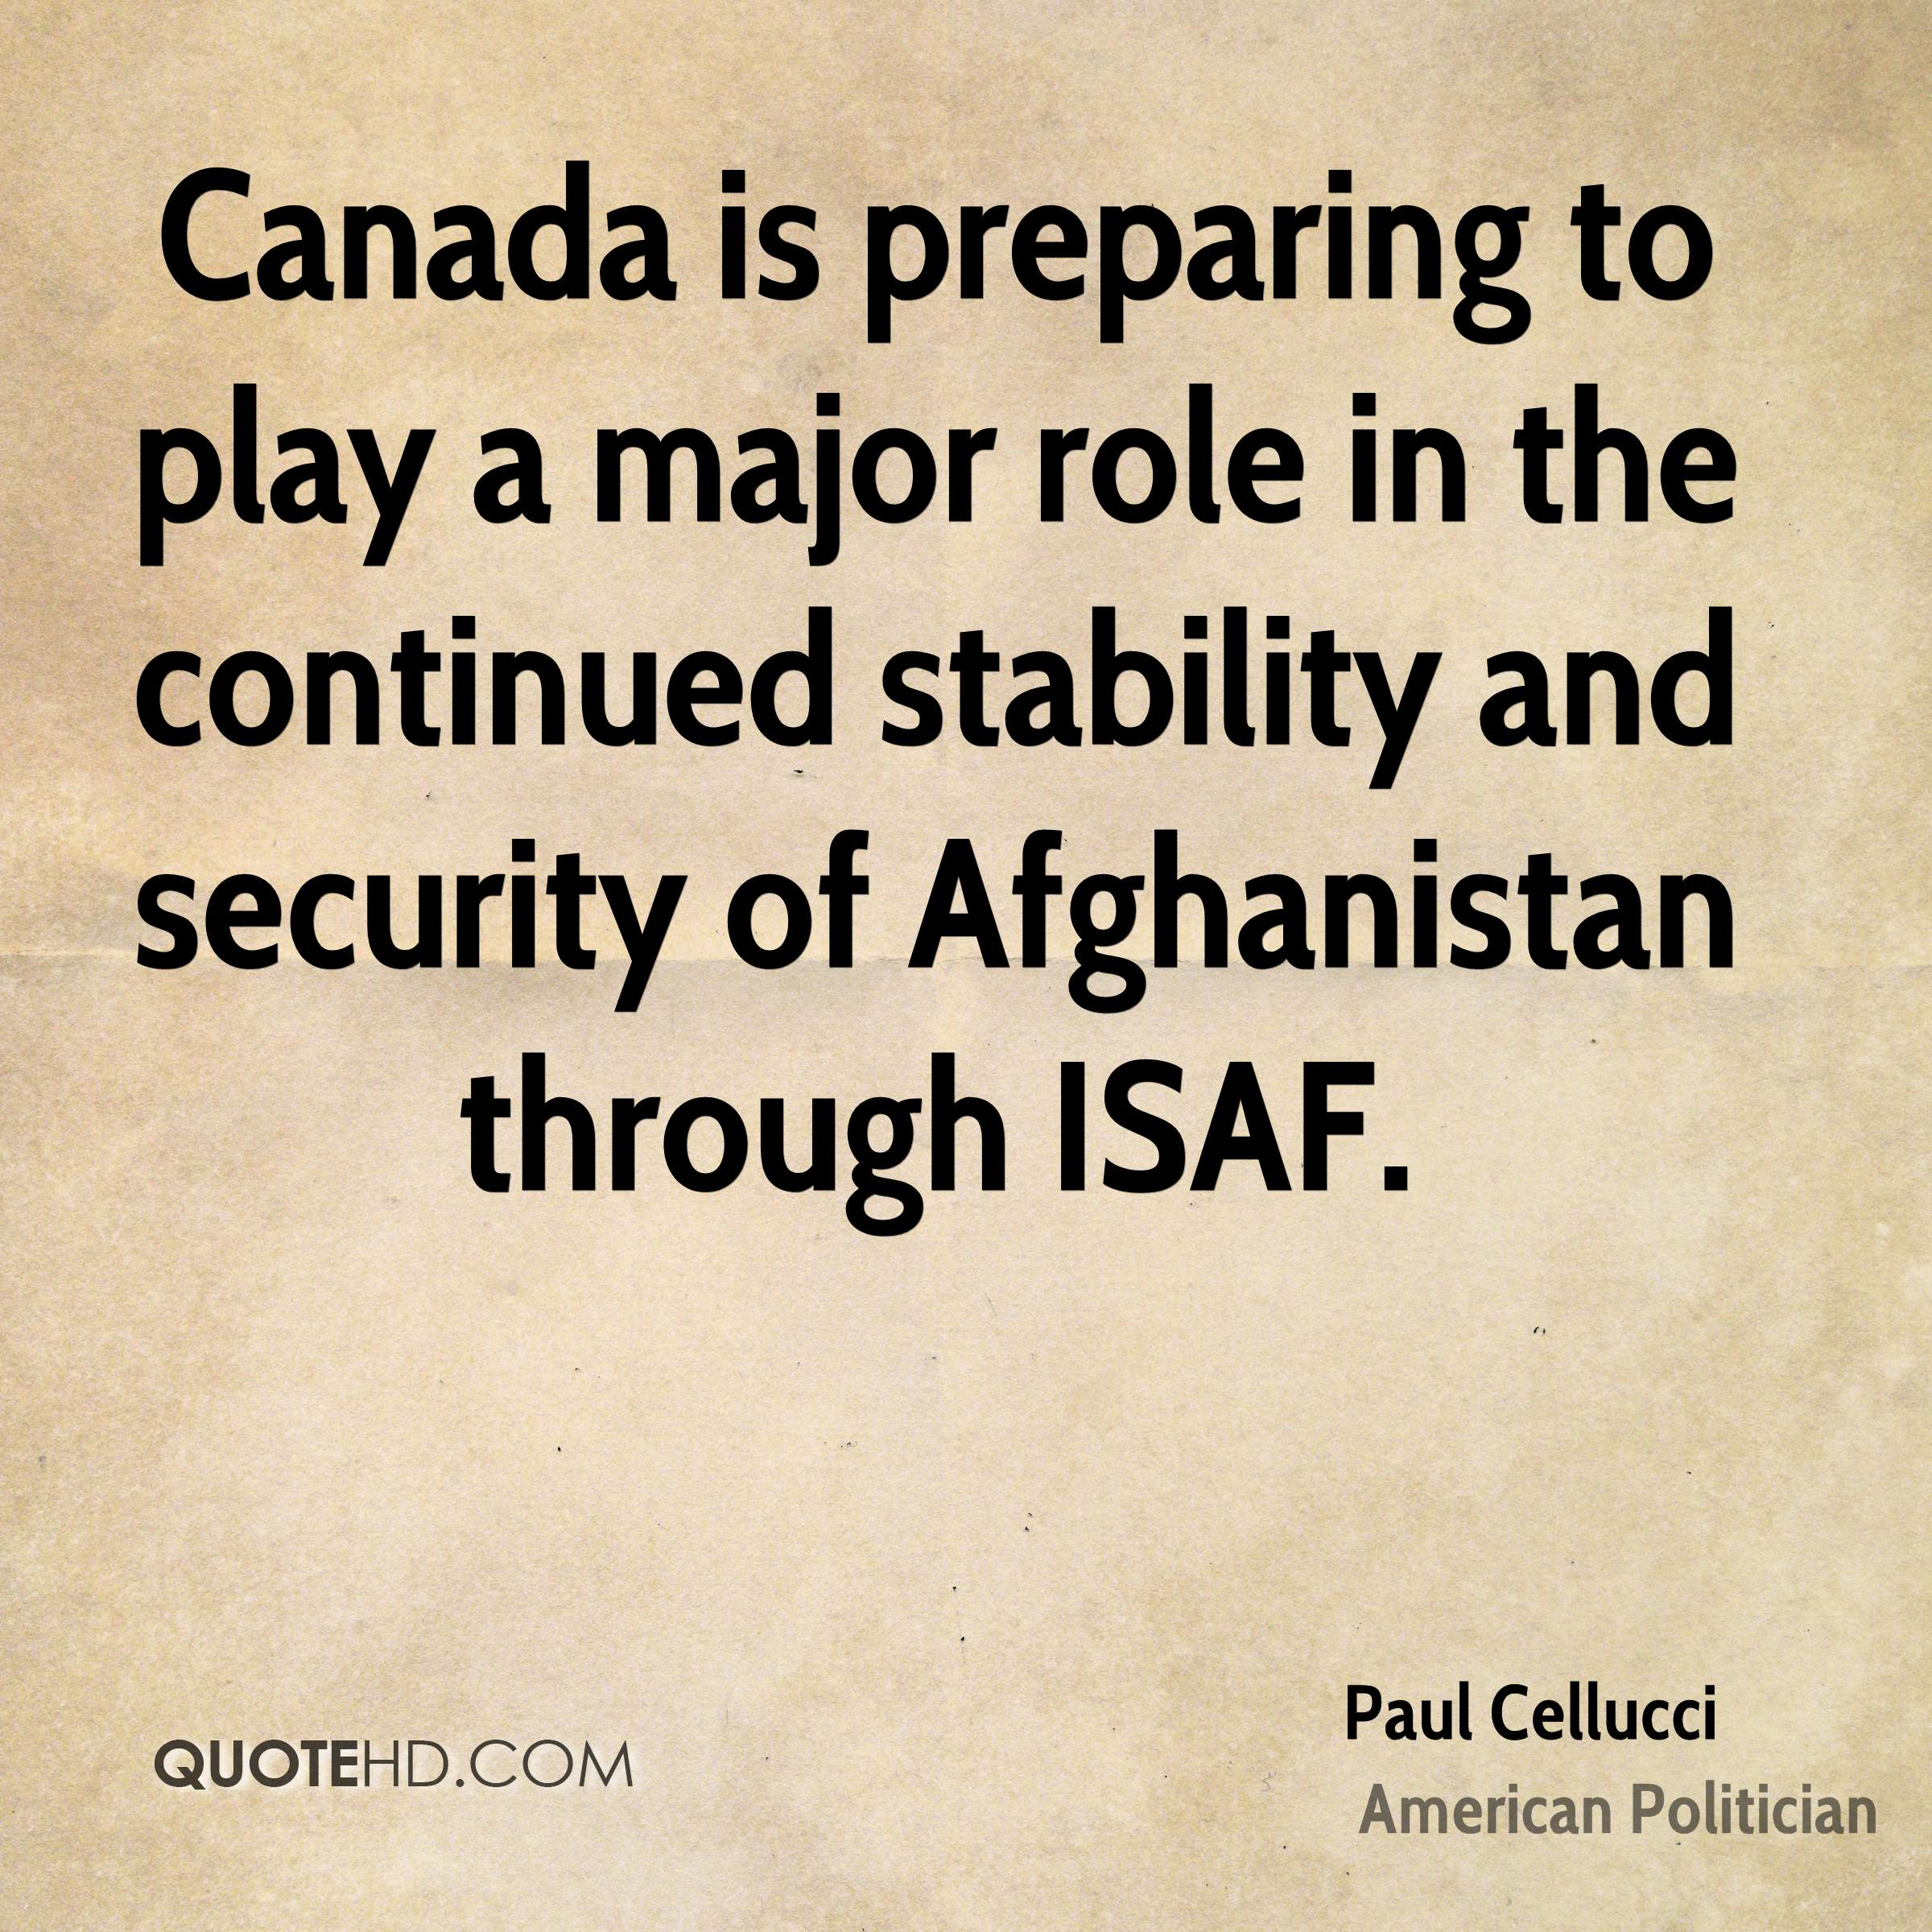 Canada is preparing to play a major role in the continued stability and security of Afghanistan through ISAF.